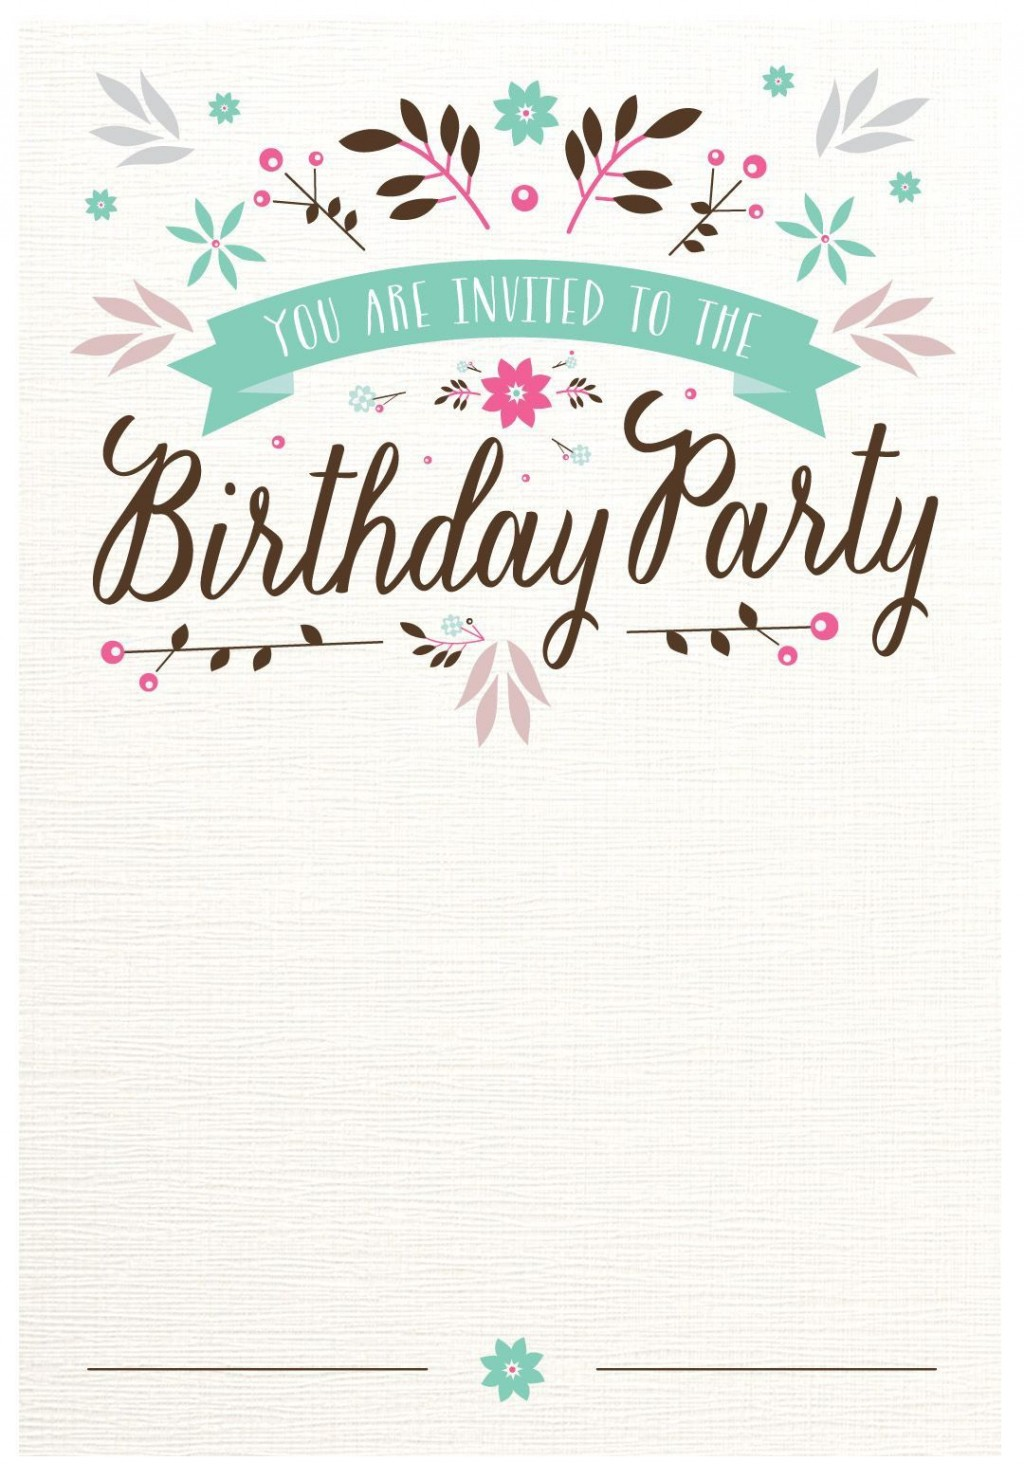 002 Surprising Free Birthday Card Invitation Template Printable Picture Large